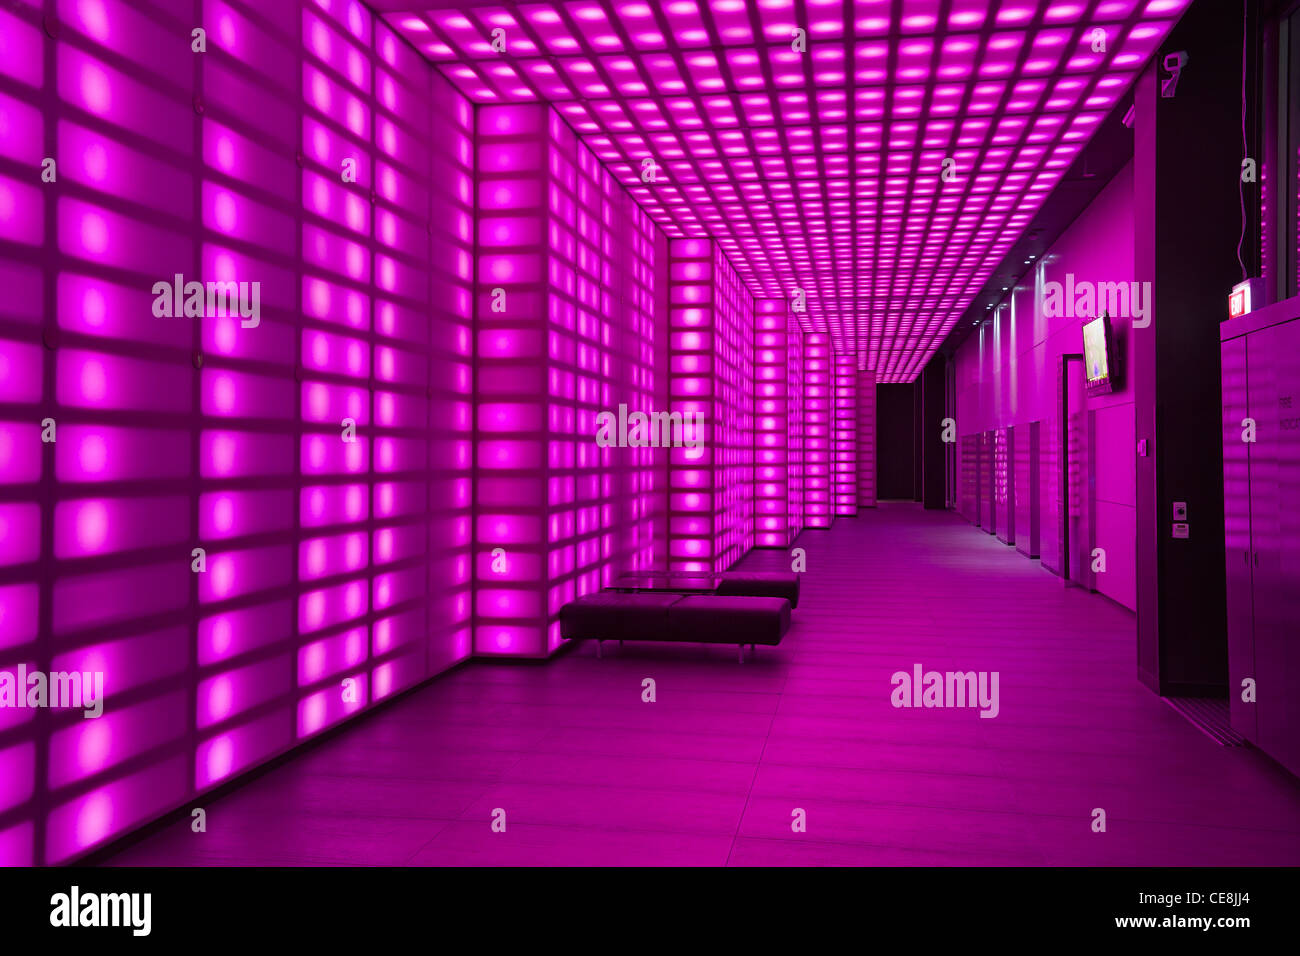 Rosa Beleuchtung Wand Lobby Eingang Zimmer Night Club Oder Disco